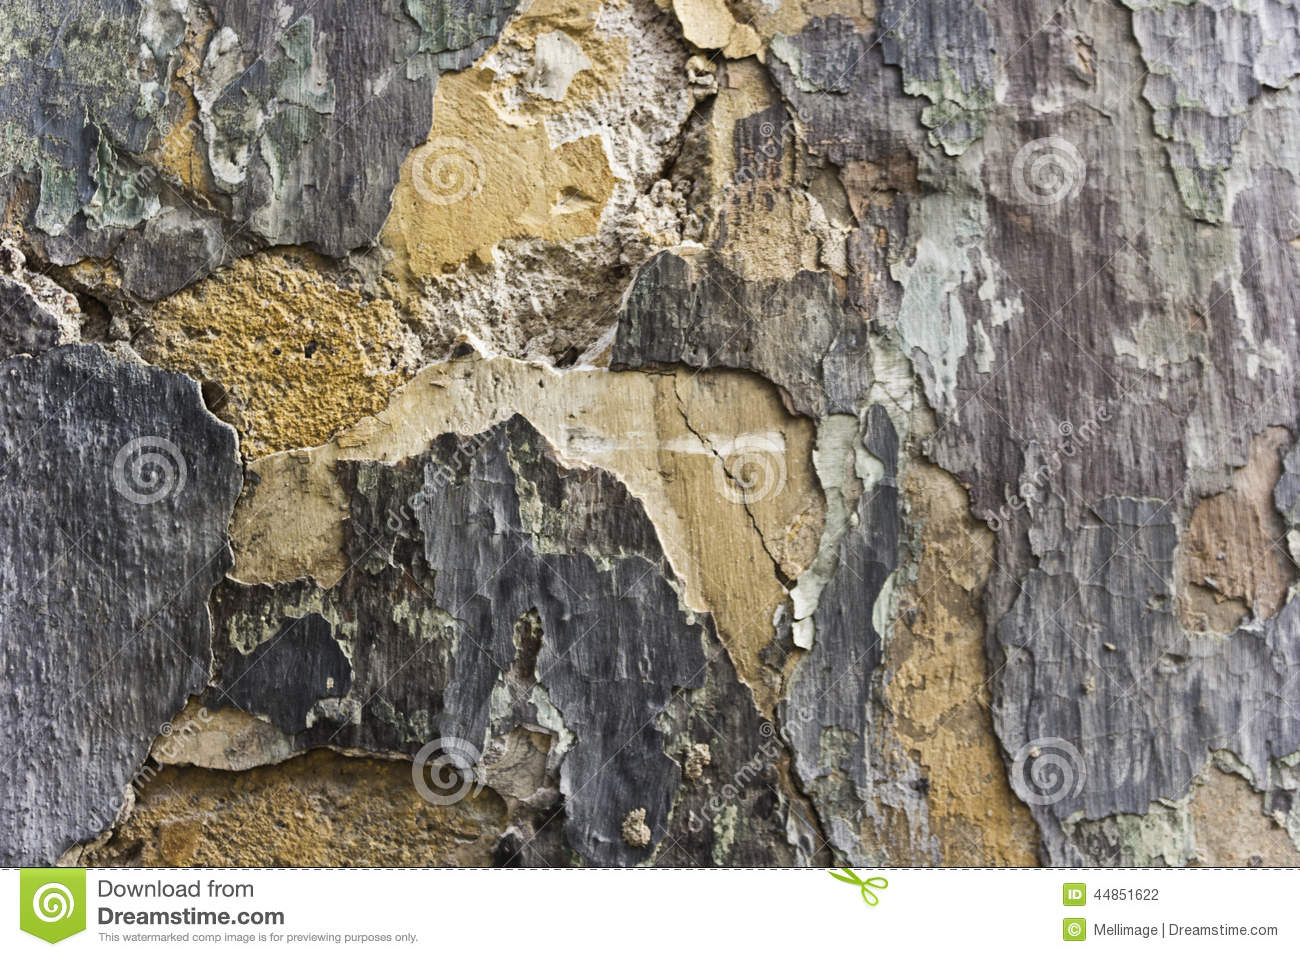 Pared agrietada